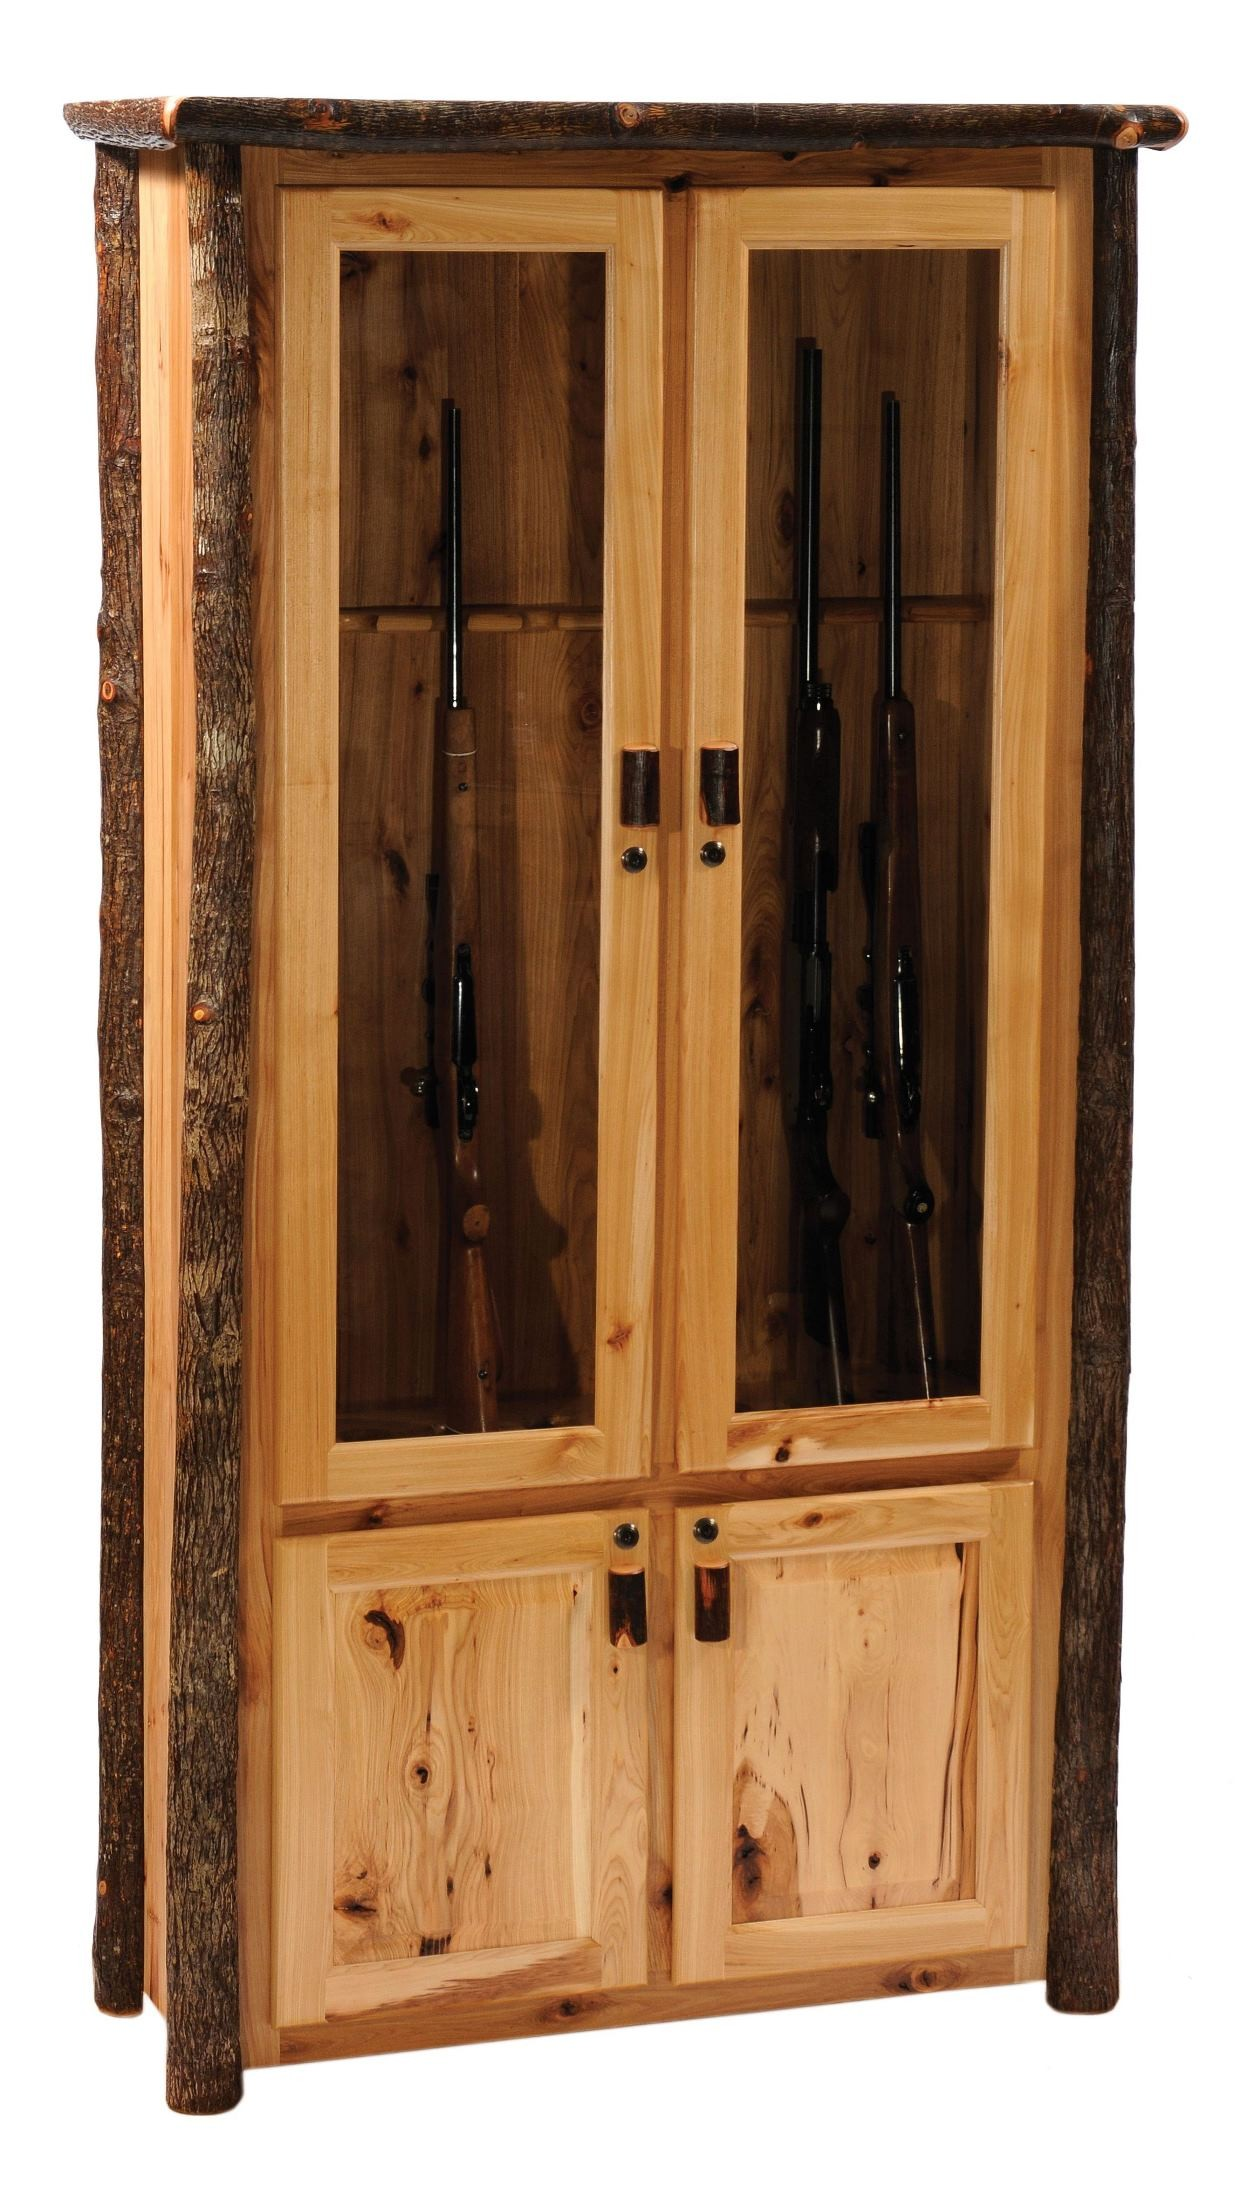 Hickory 8 Gun Cabinet from Fireside Lodge 86801H